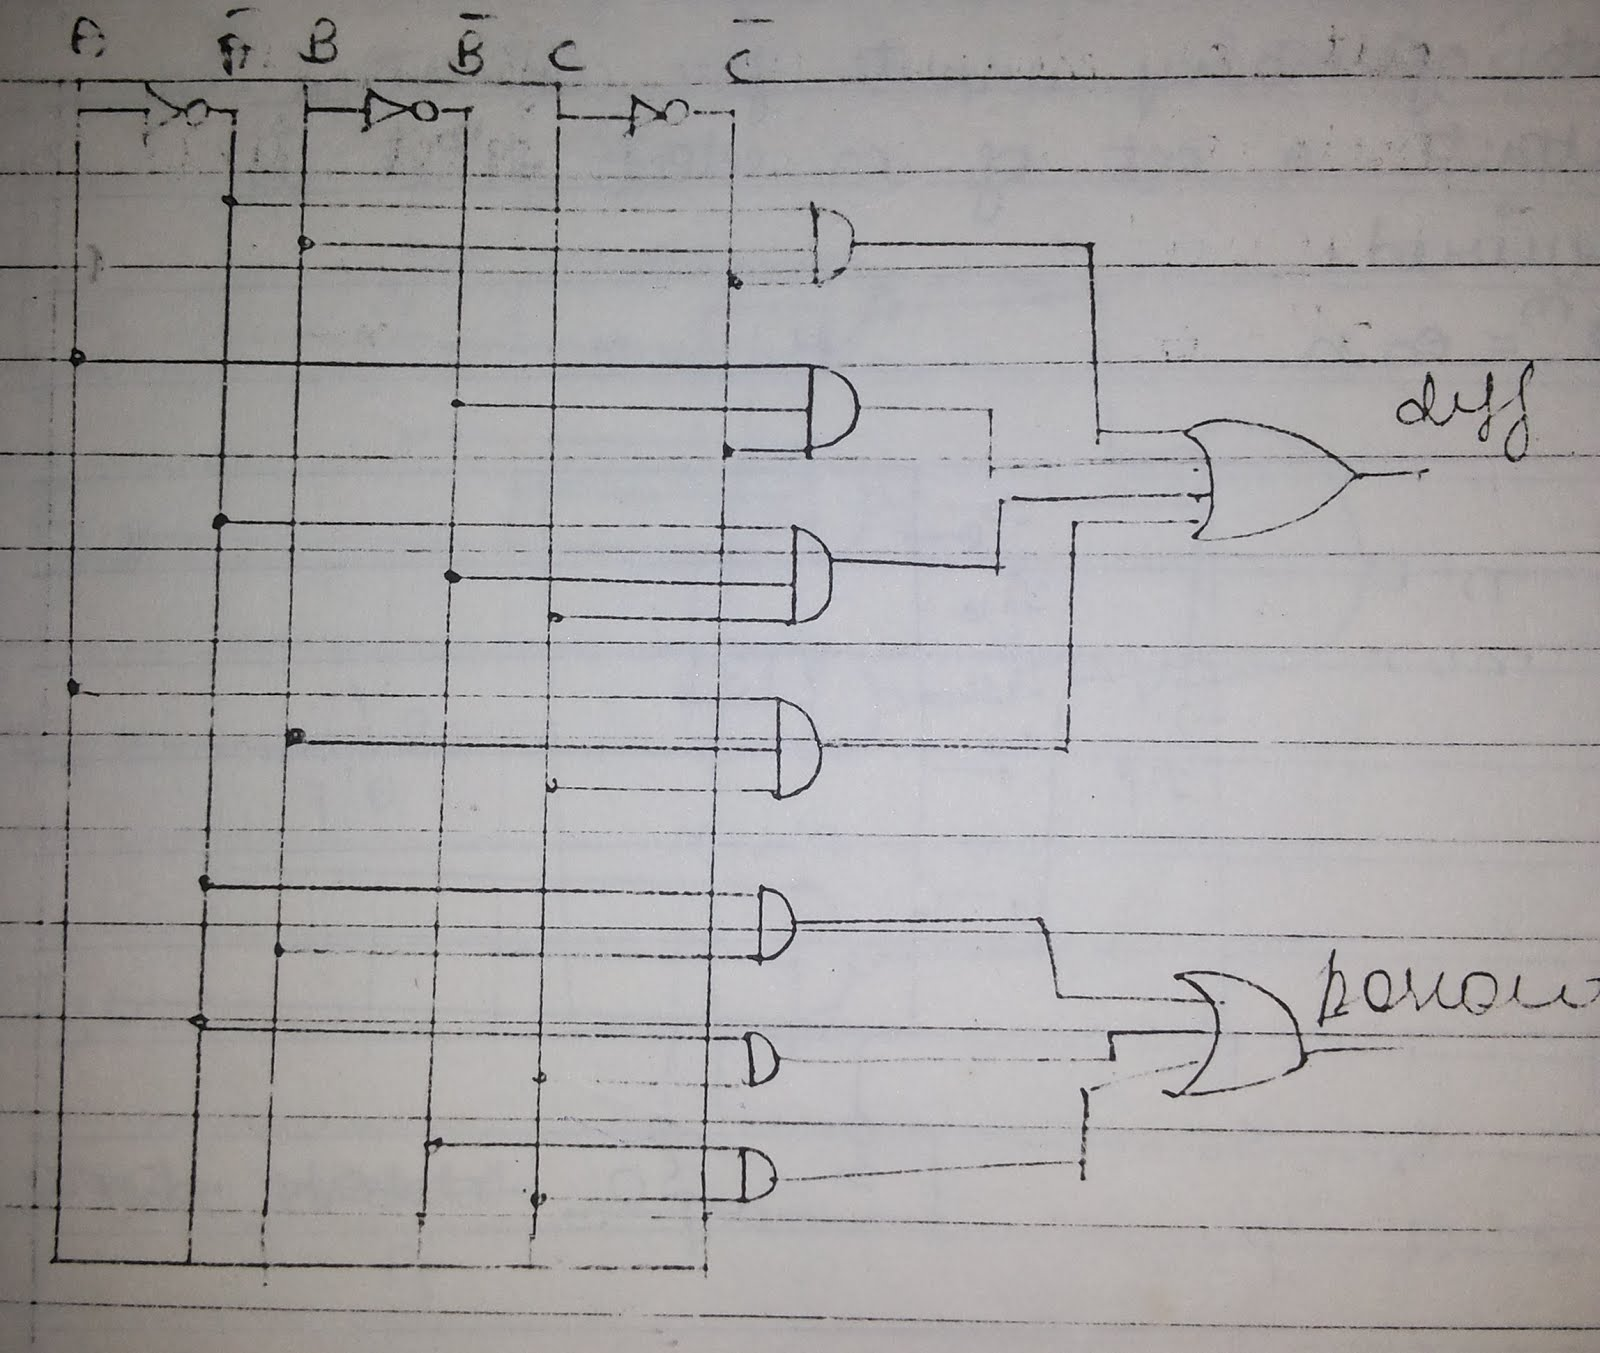 Basic Digital Techniques Applications Part 6 Full Subtractor A Logic Circuit Which Is Used For Subtracting Three Diagram Of